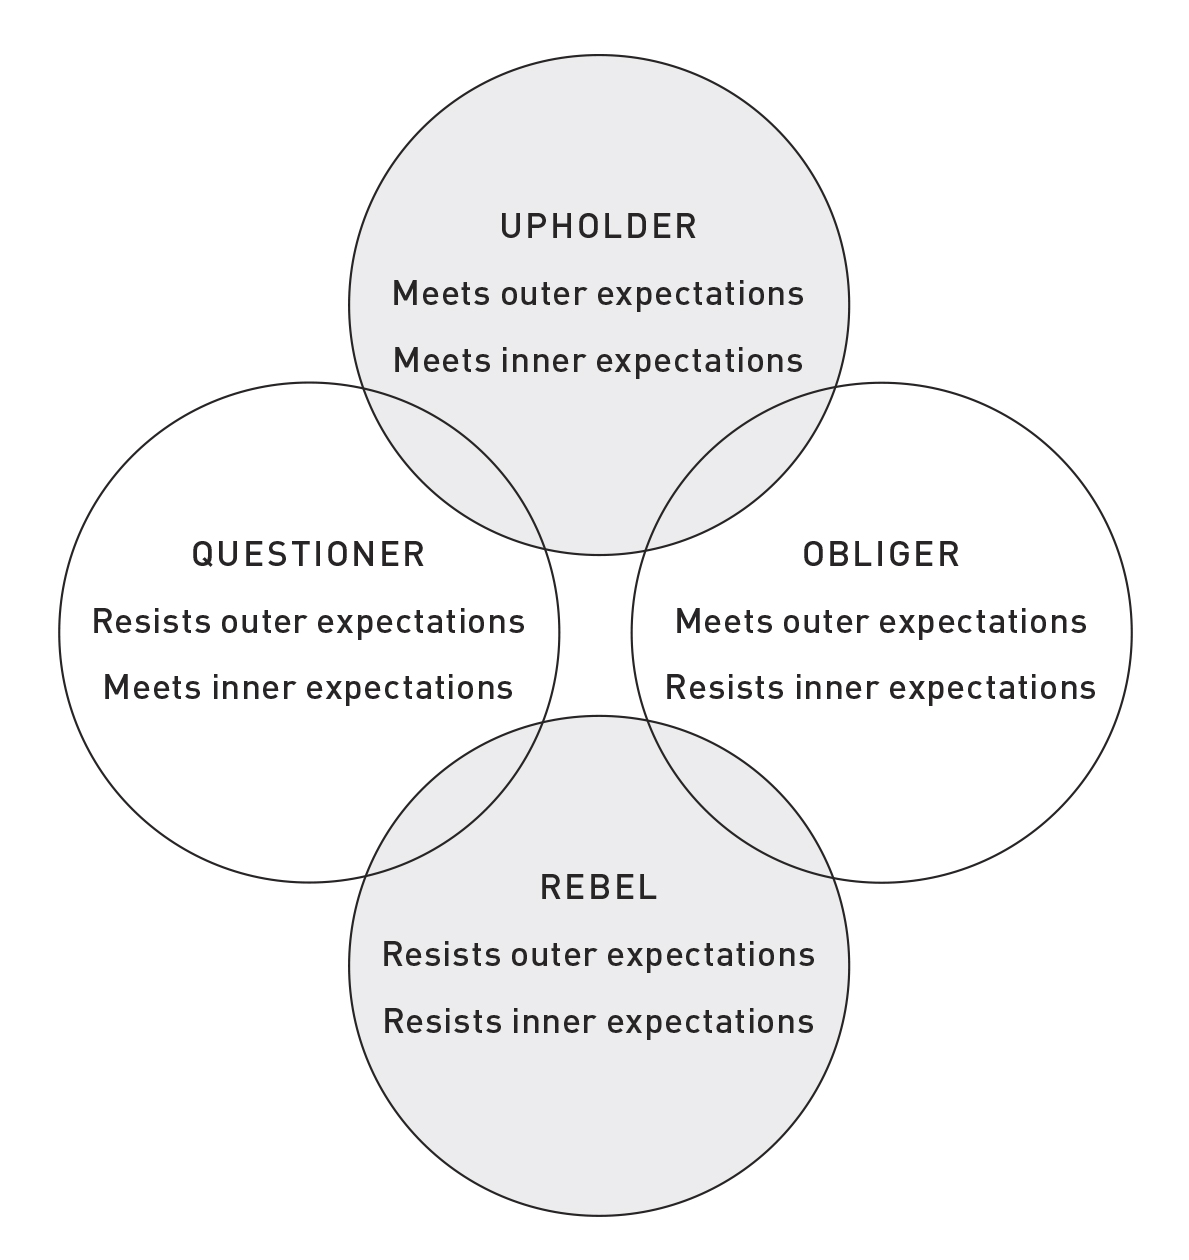 Did the Quiz Help You Decide If You're Upholder, Questioner, Obliger, Rebel? Some Thoughts